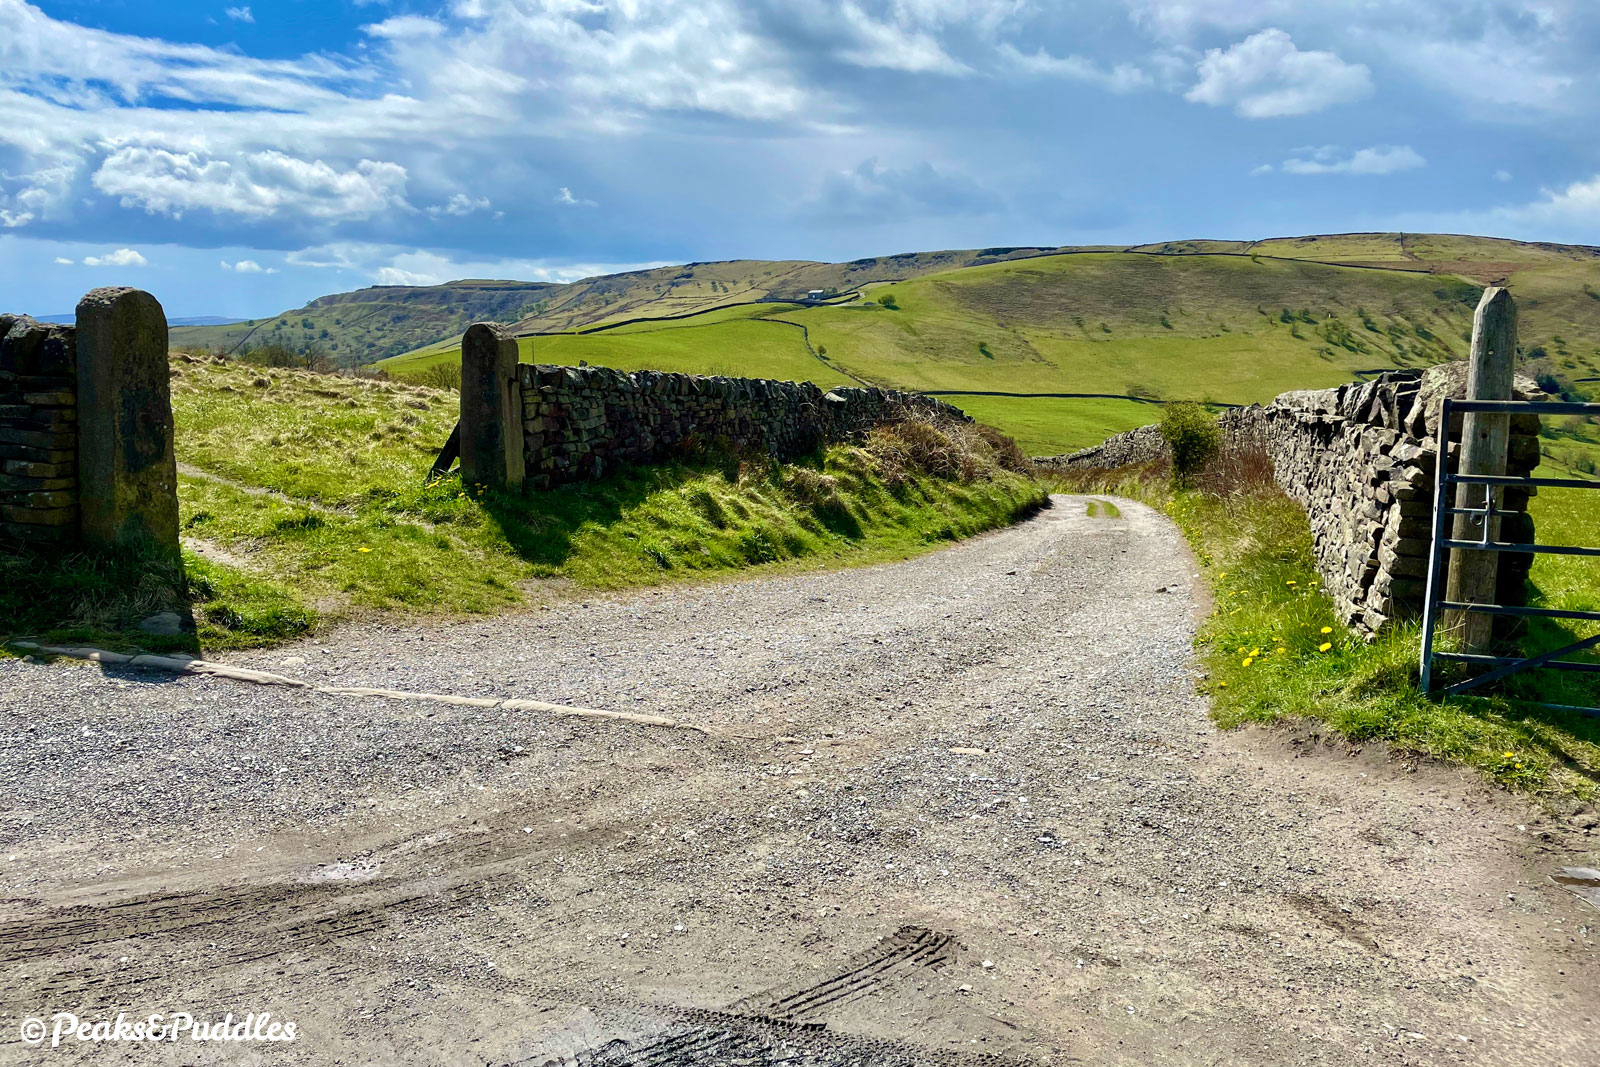 (Bridleway option) At the bridleway crossroads, turn right onto a wide track leading beautifully towards the huge mass of Chinley Churn.